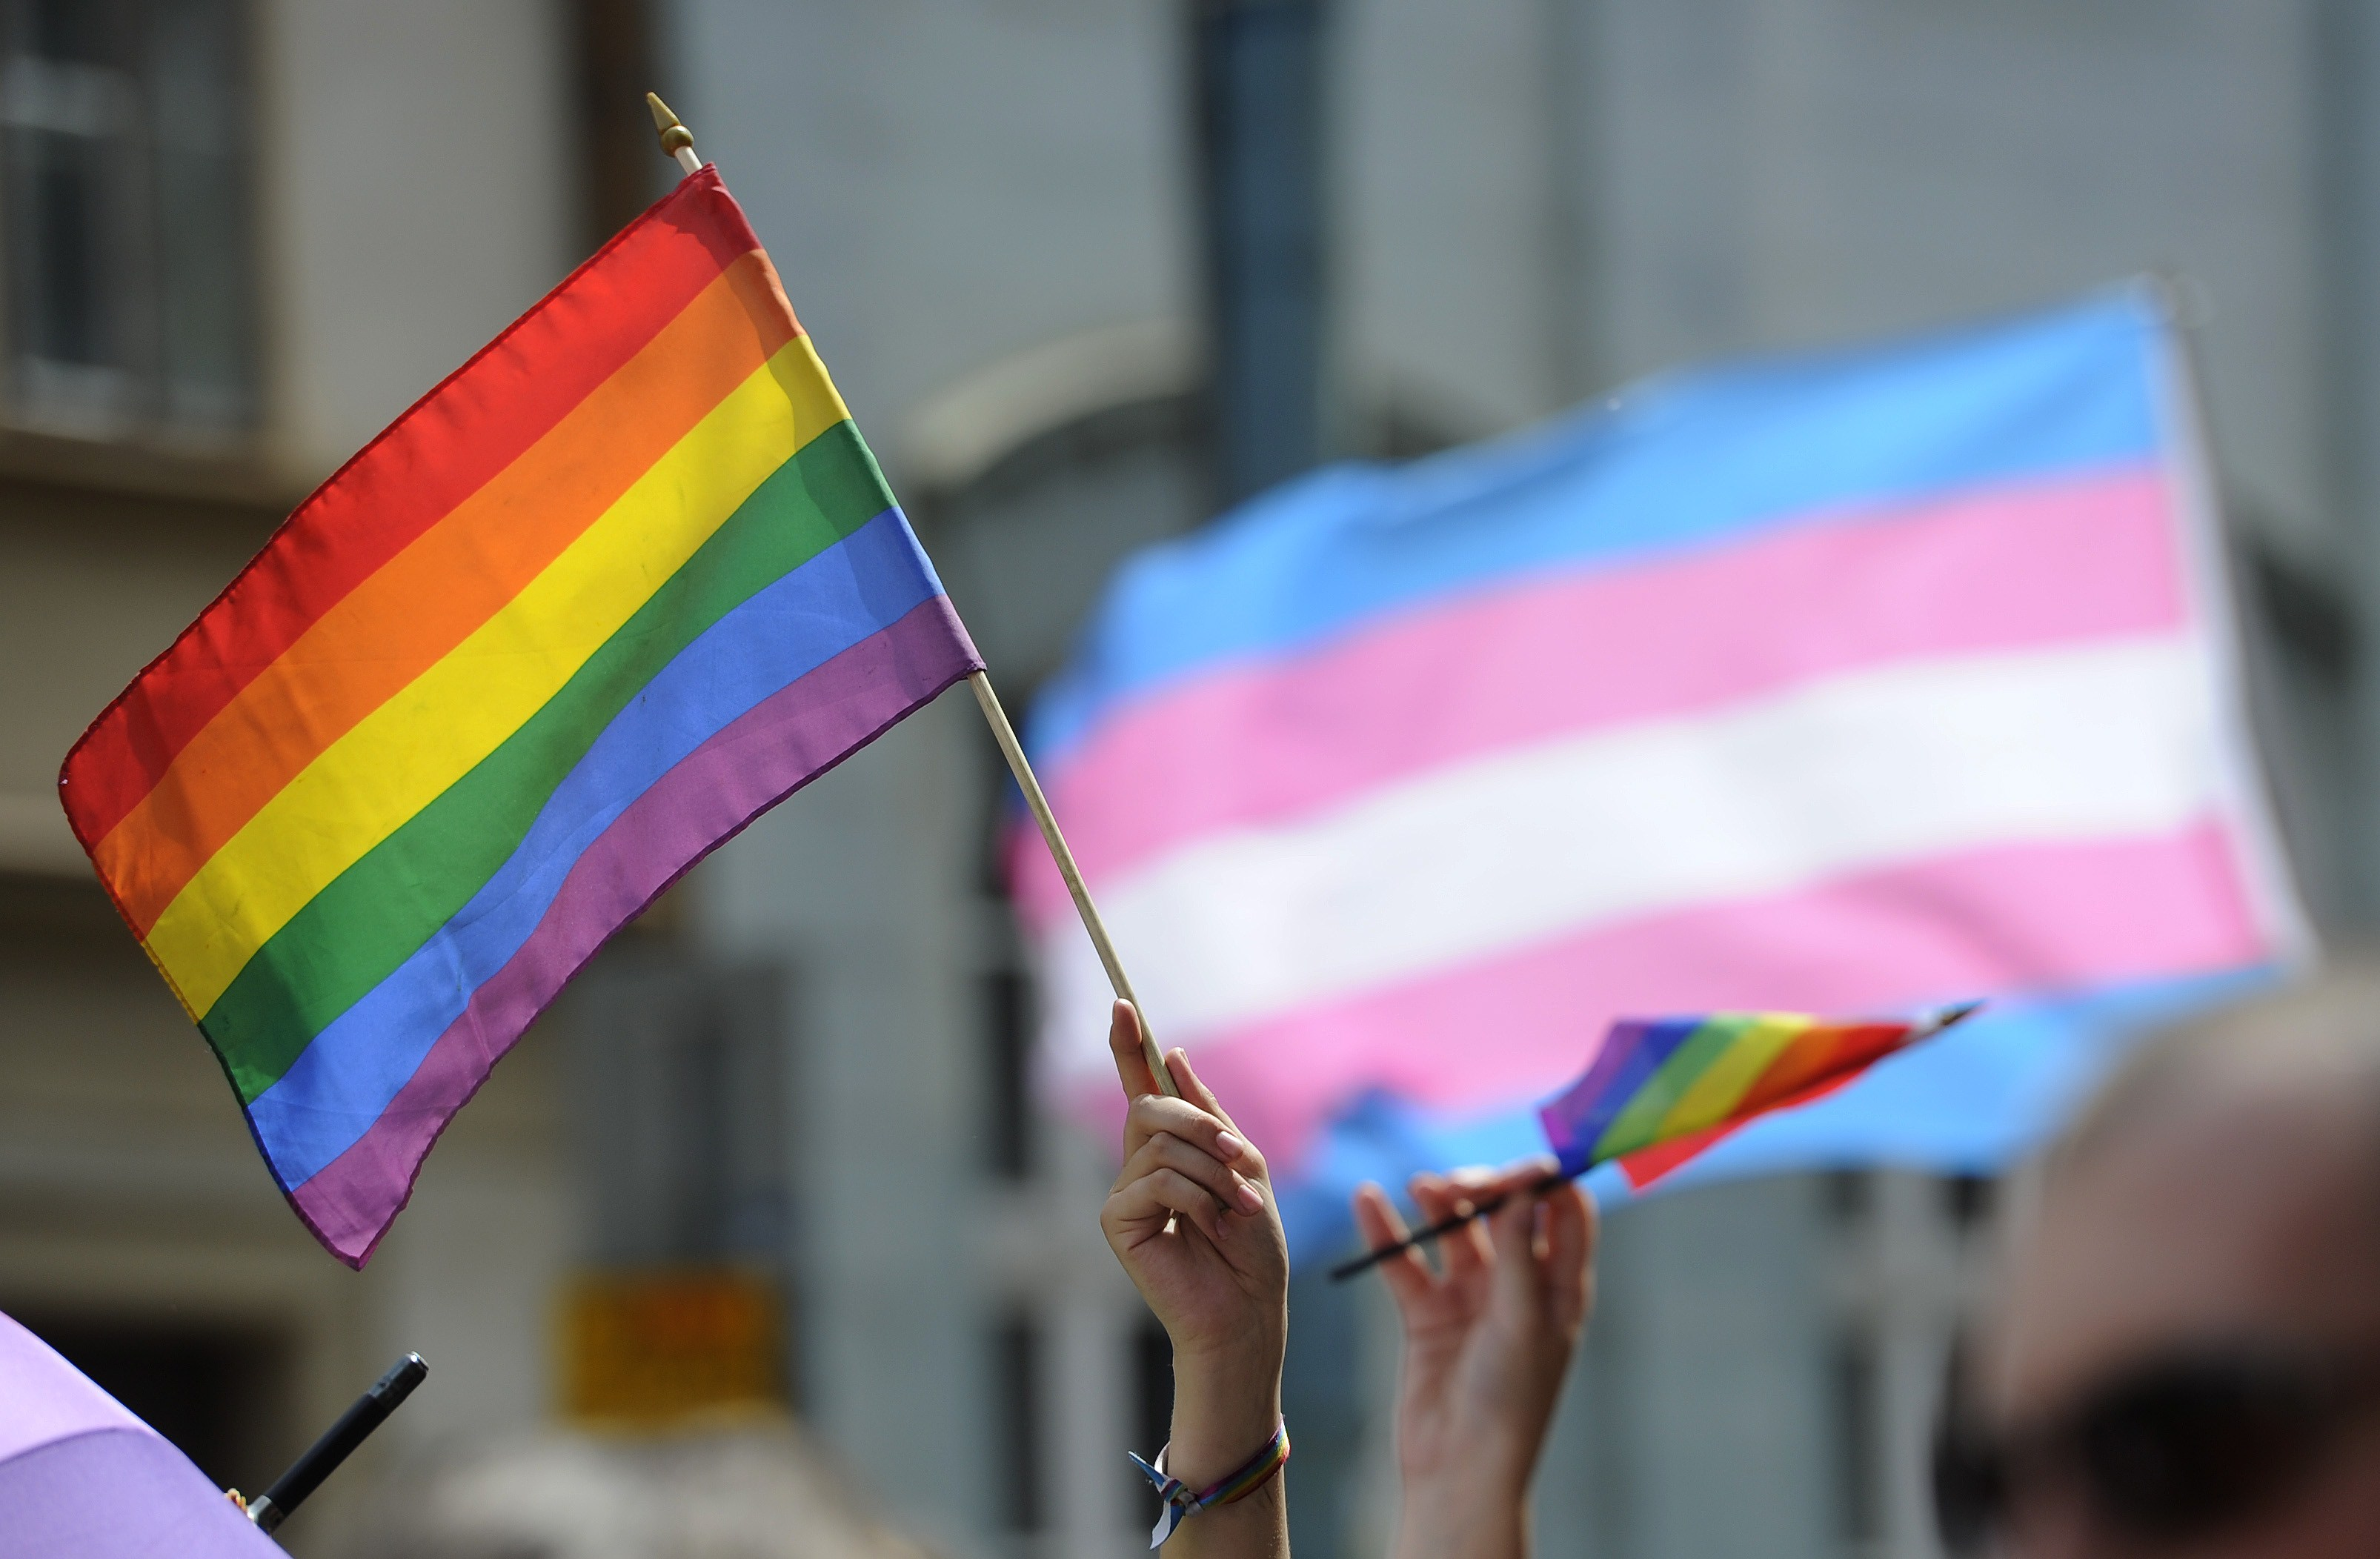 People hold up rainbow flags as they demonstrate during the lesbian, gay, bisexual and transgender (LGBT) Rainbow Pride Parade in Bratislava, Slovakia, on June 28, 2014. A Military Times/IVMF poll conducted late last year showed concerns among troops about changes in the military's policies towards transgender individuals. (Samuel Kubani/Getty Images)